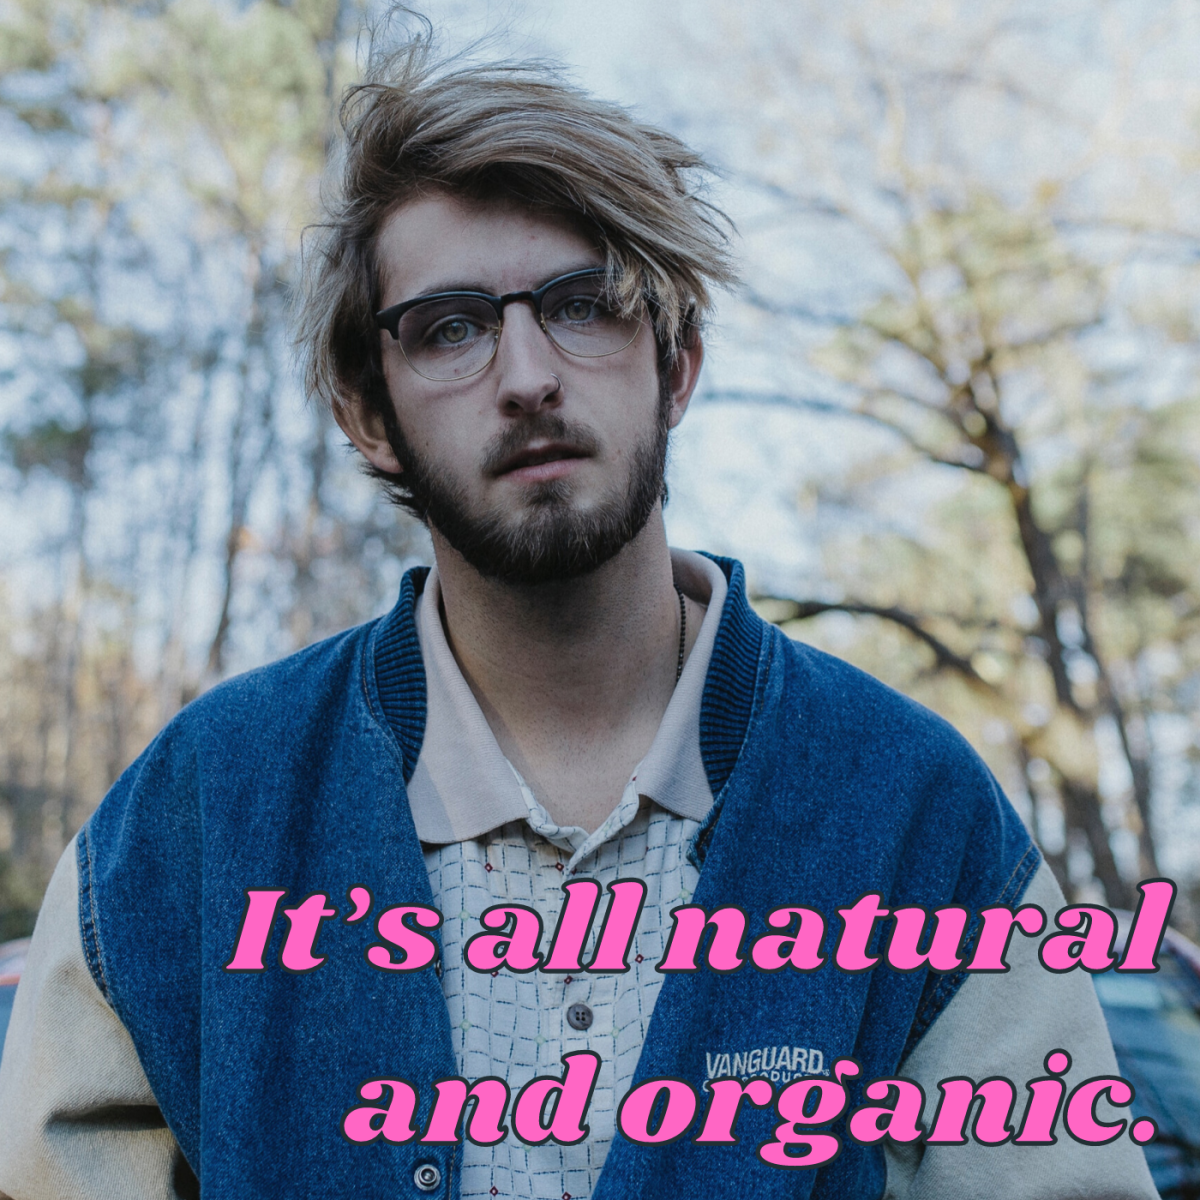 It's all natural and organic.